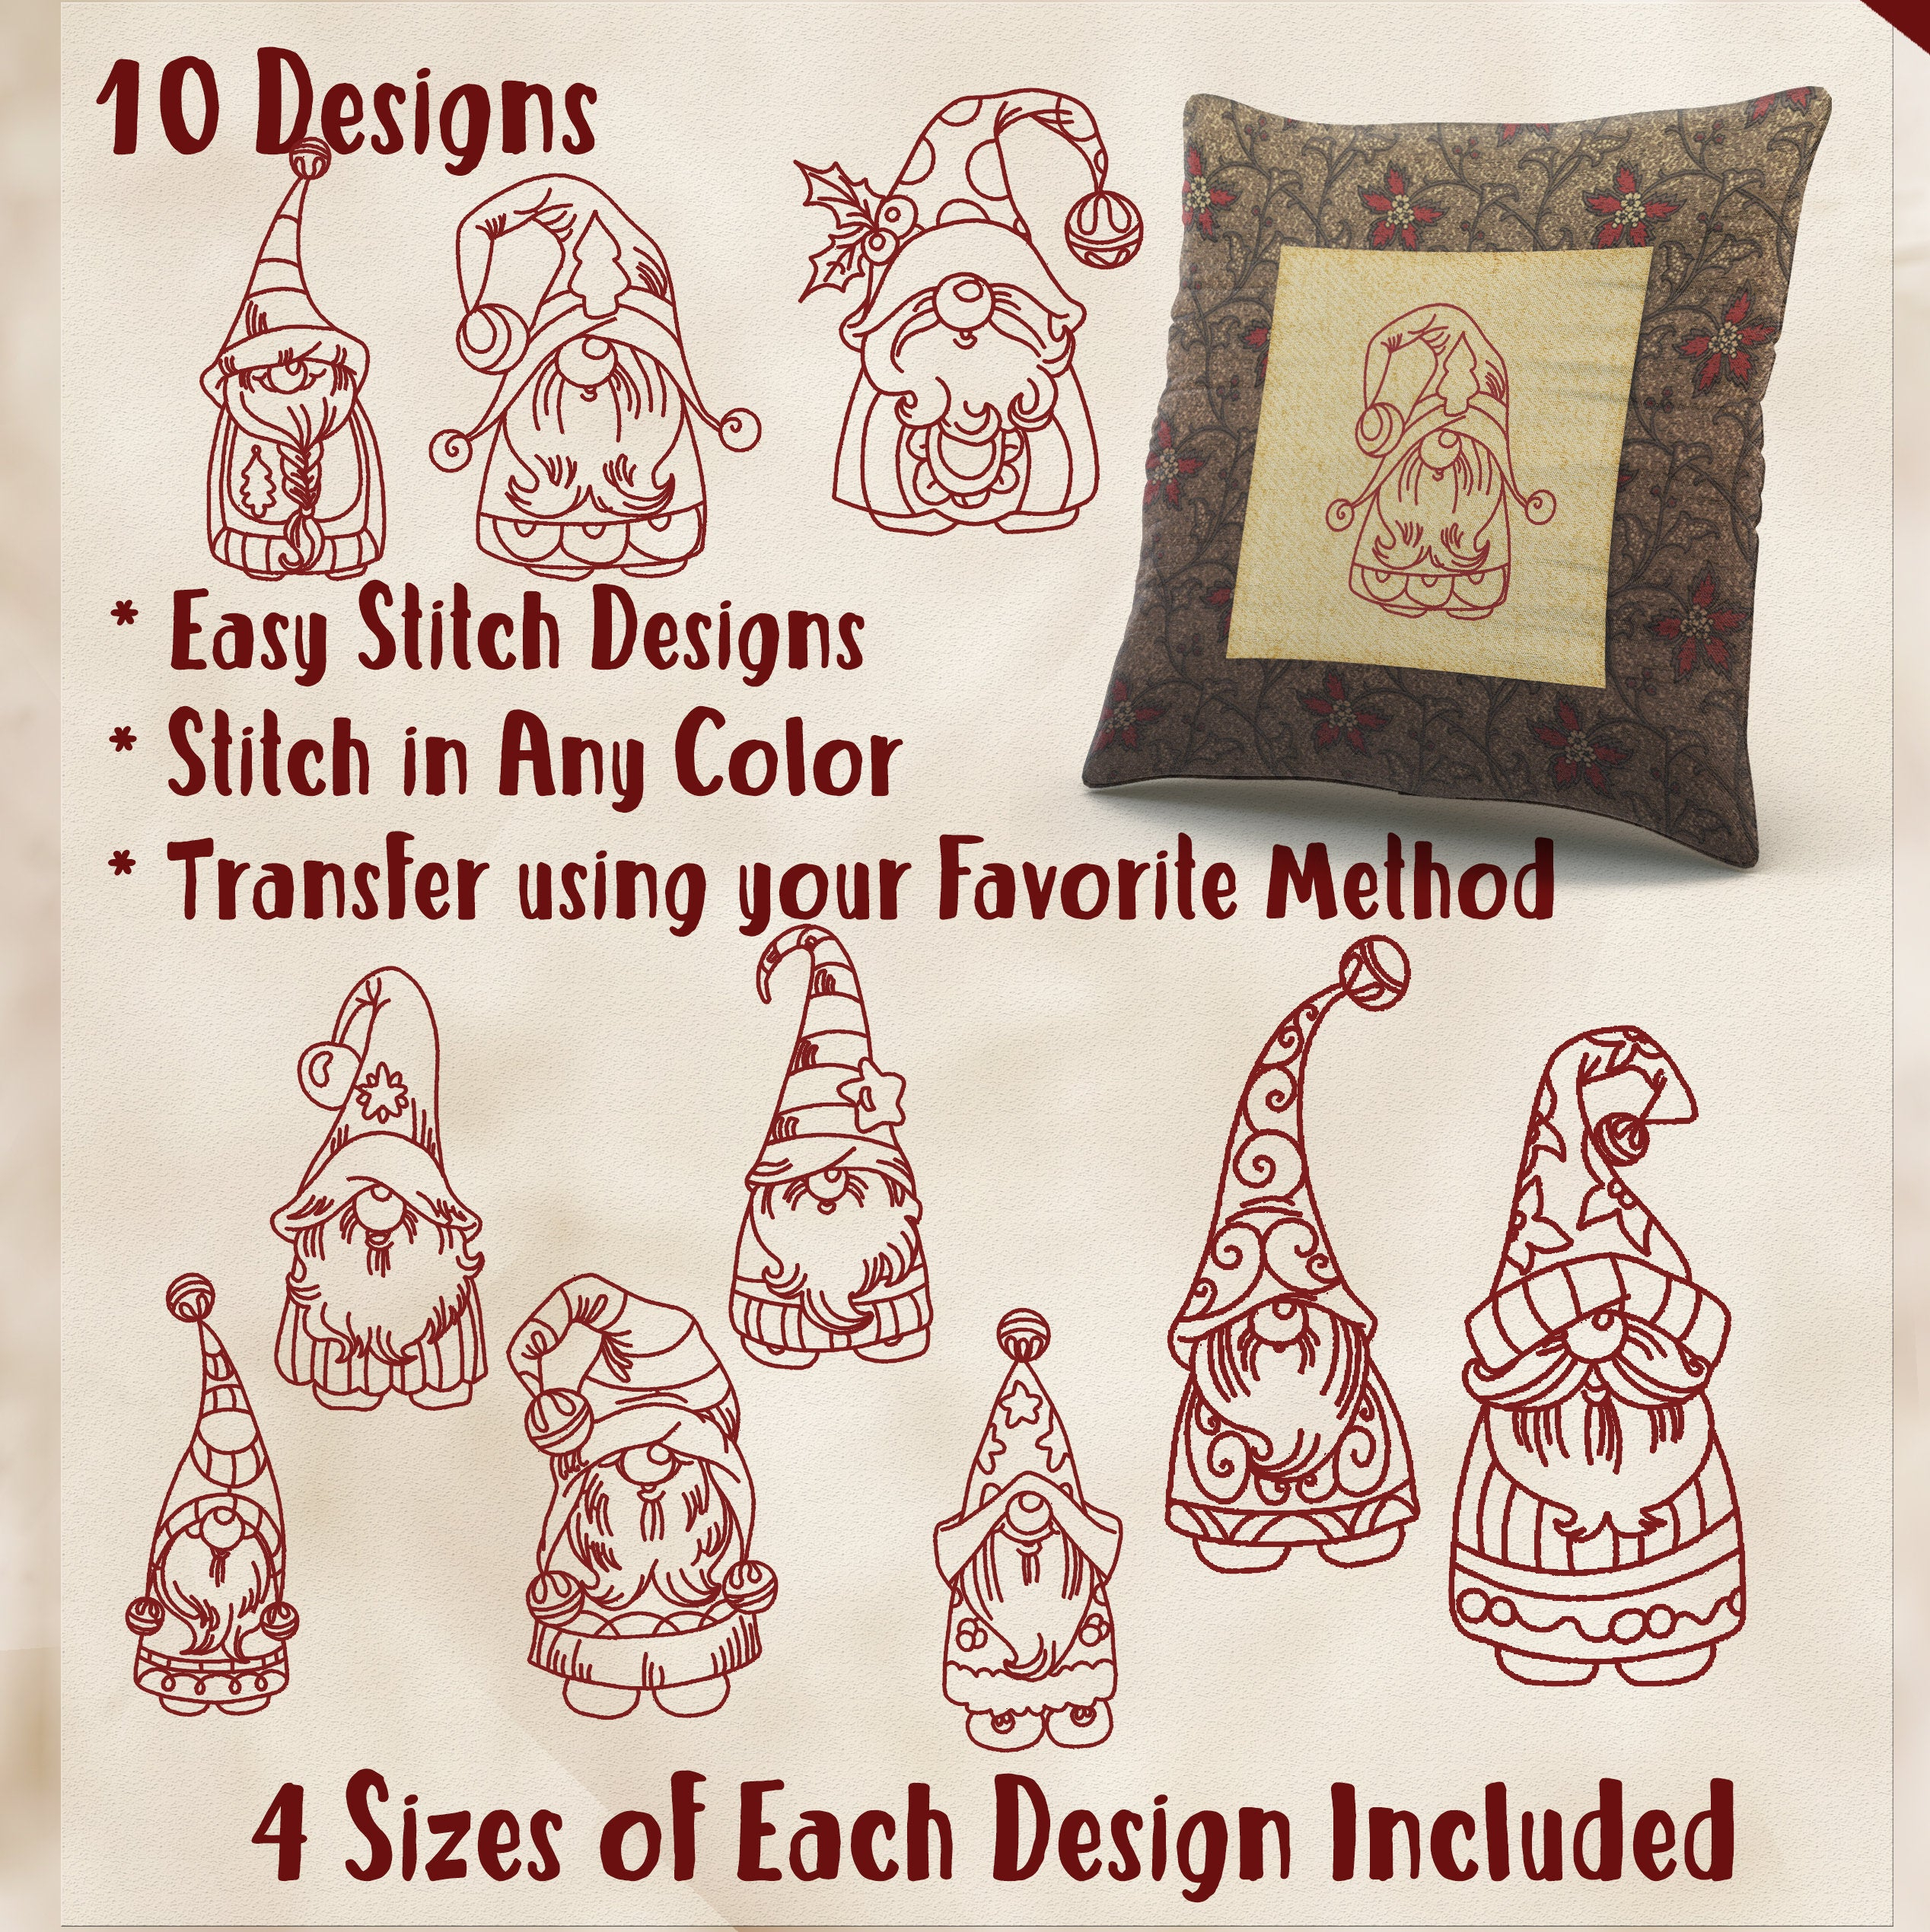 Christmas Hand Embroidery Patterns Sale Hand Embroidery Patterns Holiday Gnomes In 4 Sizes Pdf Instant Download 10 Designs For Holidays Christmas Quilting Embroidery